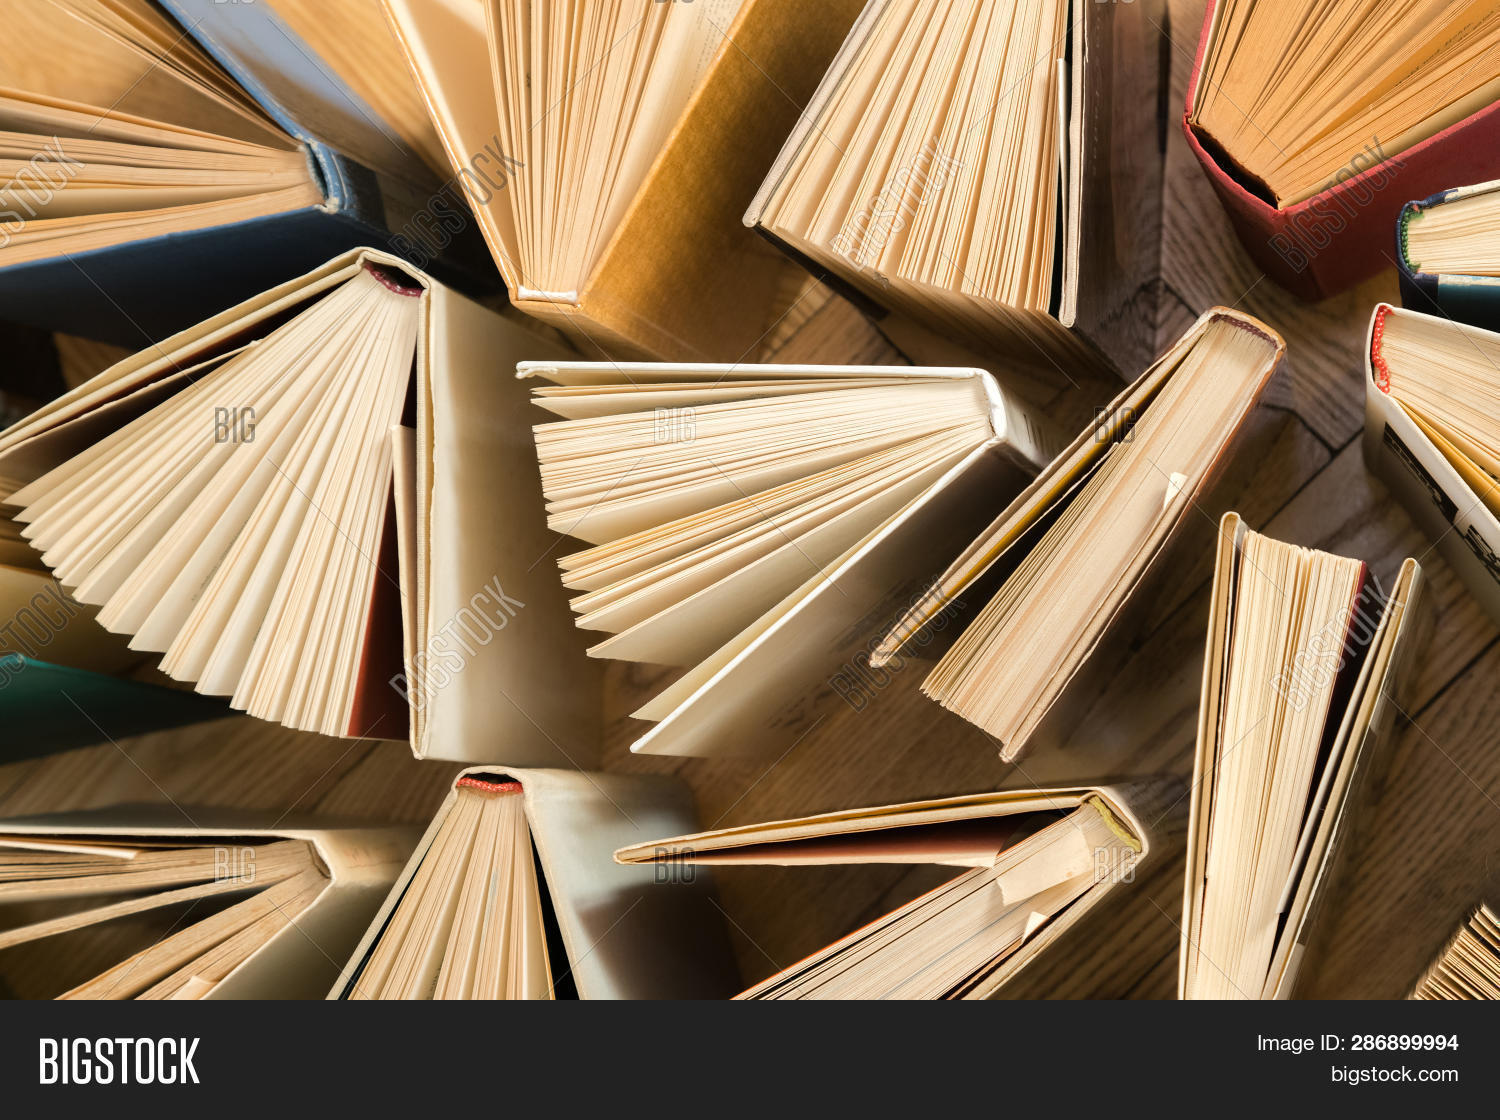 Old And Used Hardback Books, Text Books Seen From Above On Woode